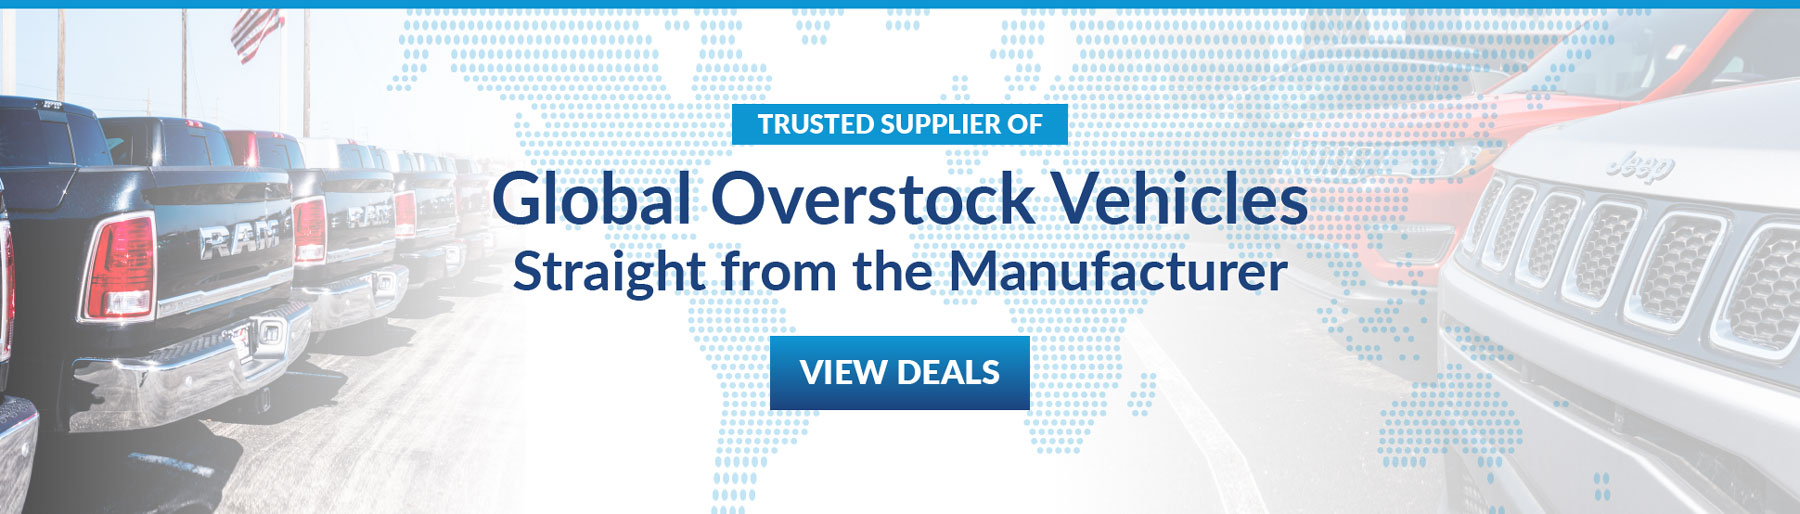 Global Overstock Vehicles straight from the Manufacturer